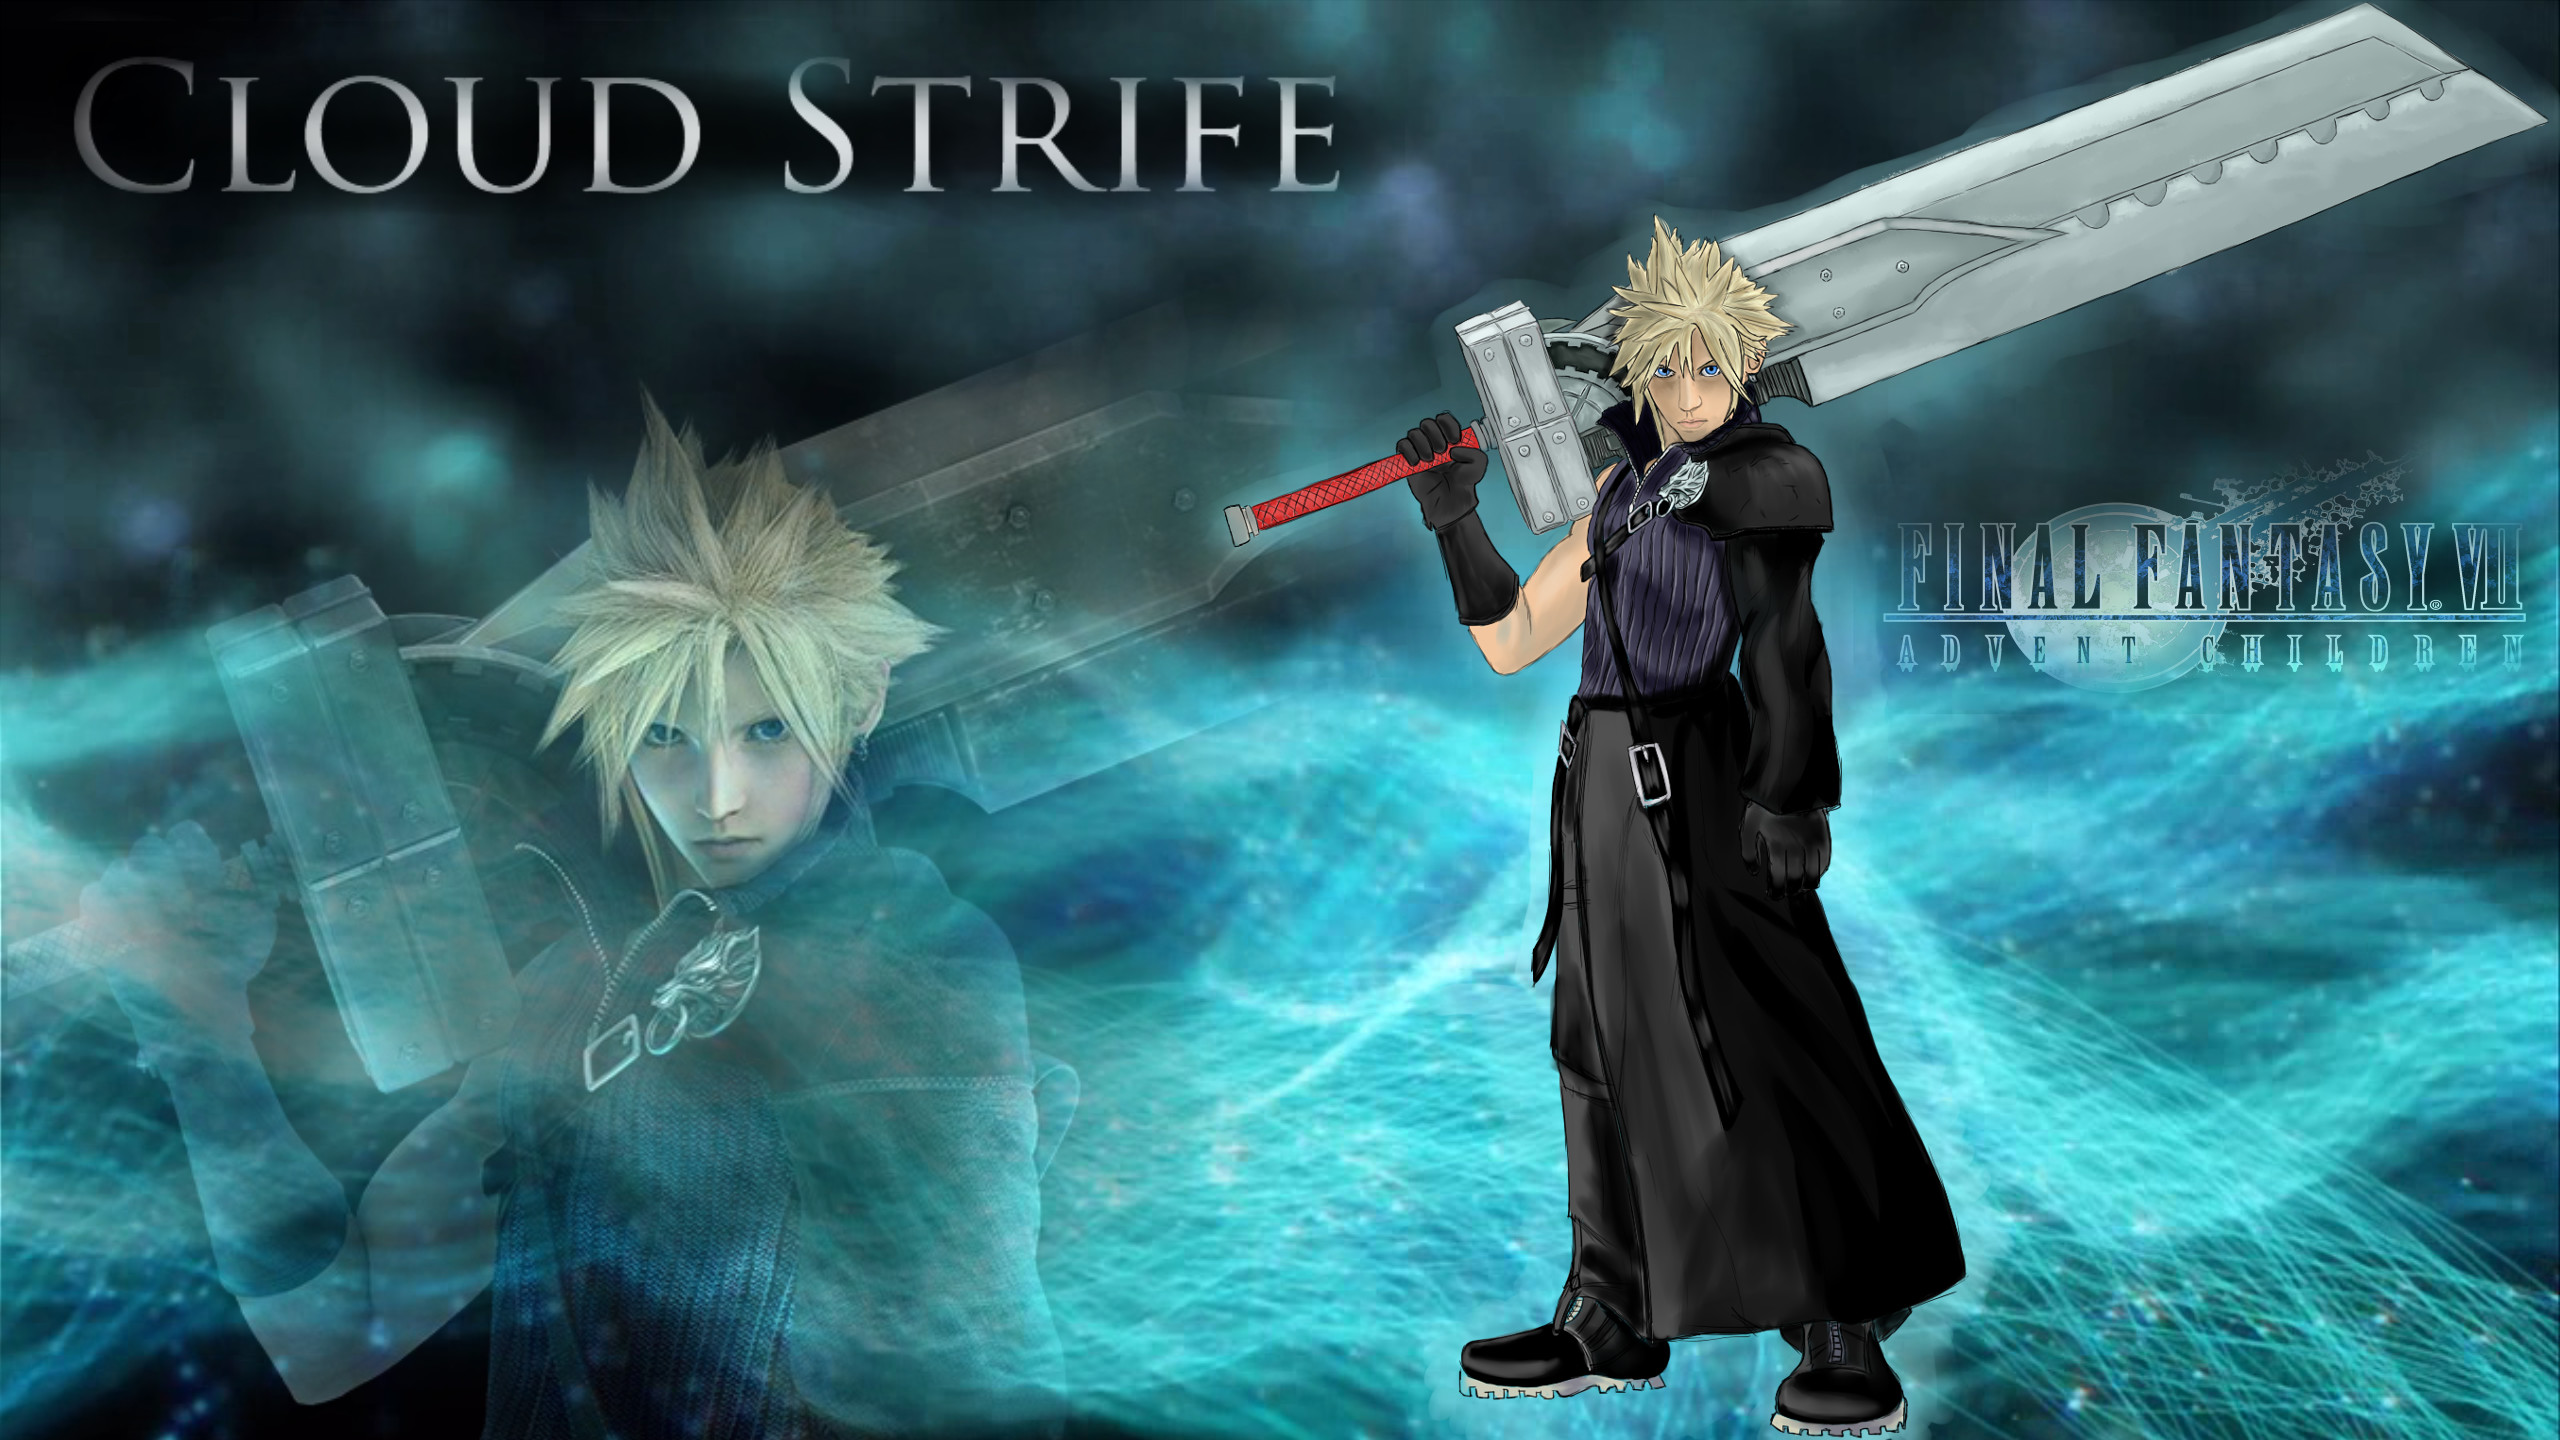 Cloud Strife Wallpaper 2 by Robsa990 Cloud Strife Wallpaper 2 by Robsa990